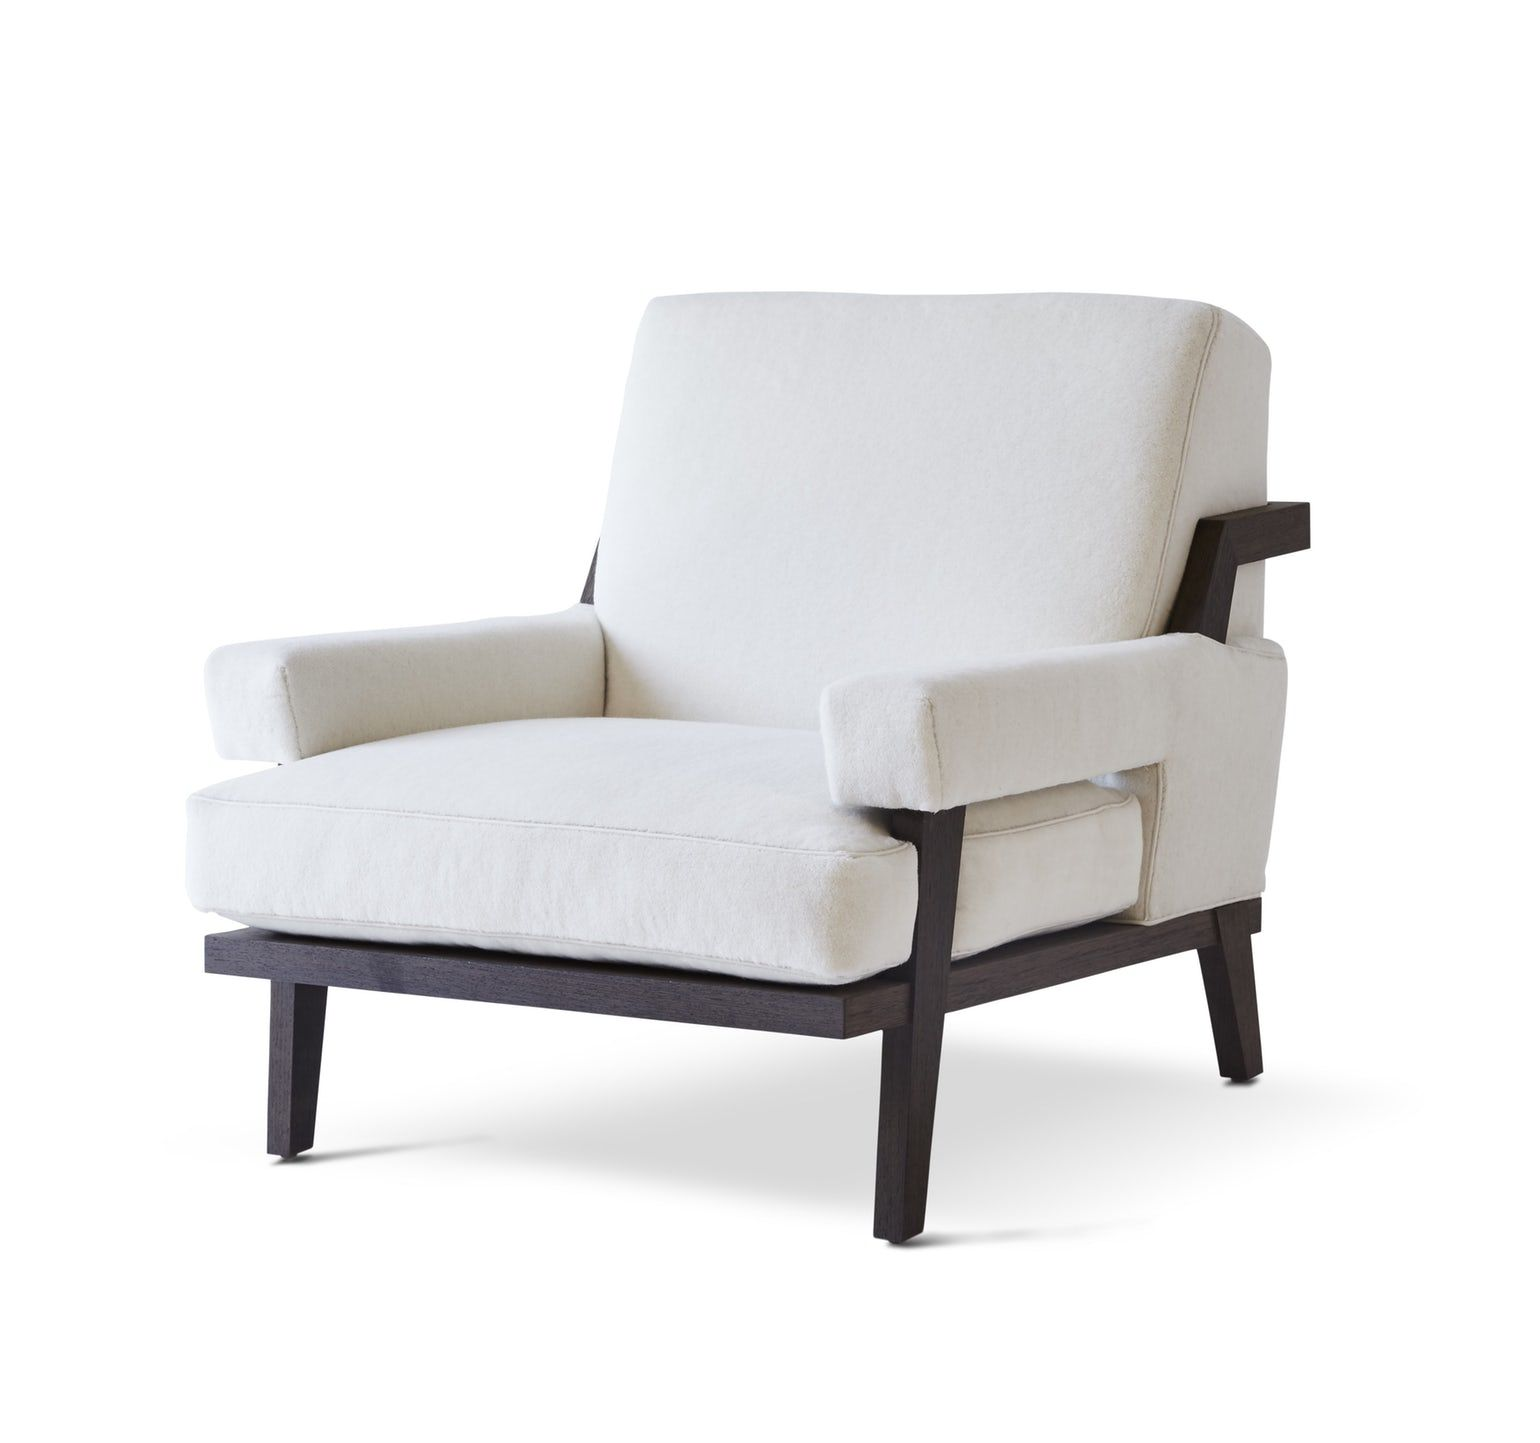 cigar lounge chair contemporary transitional mid century modern